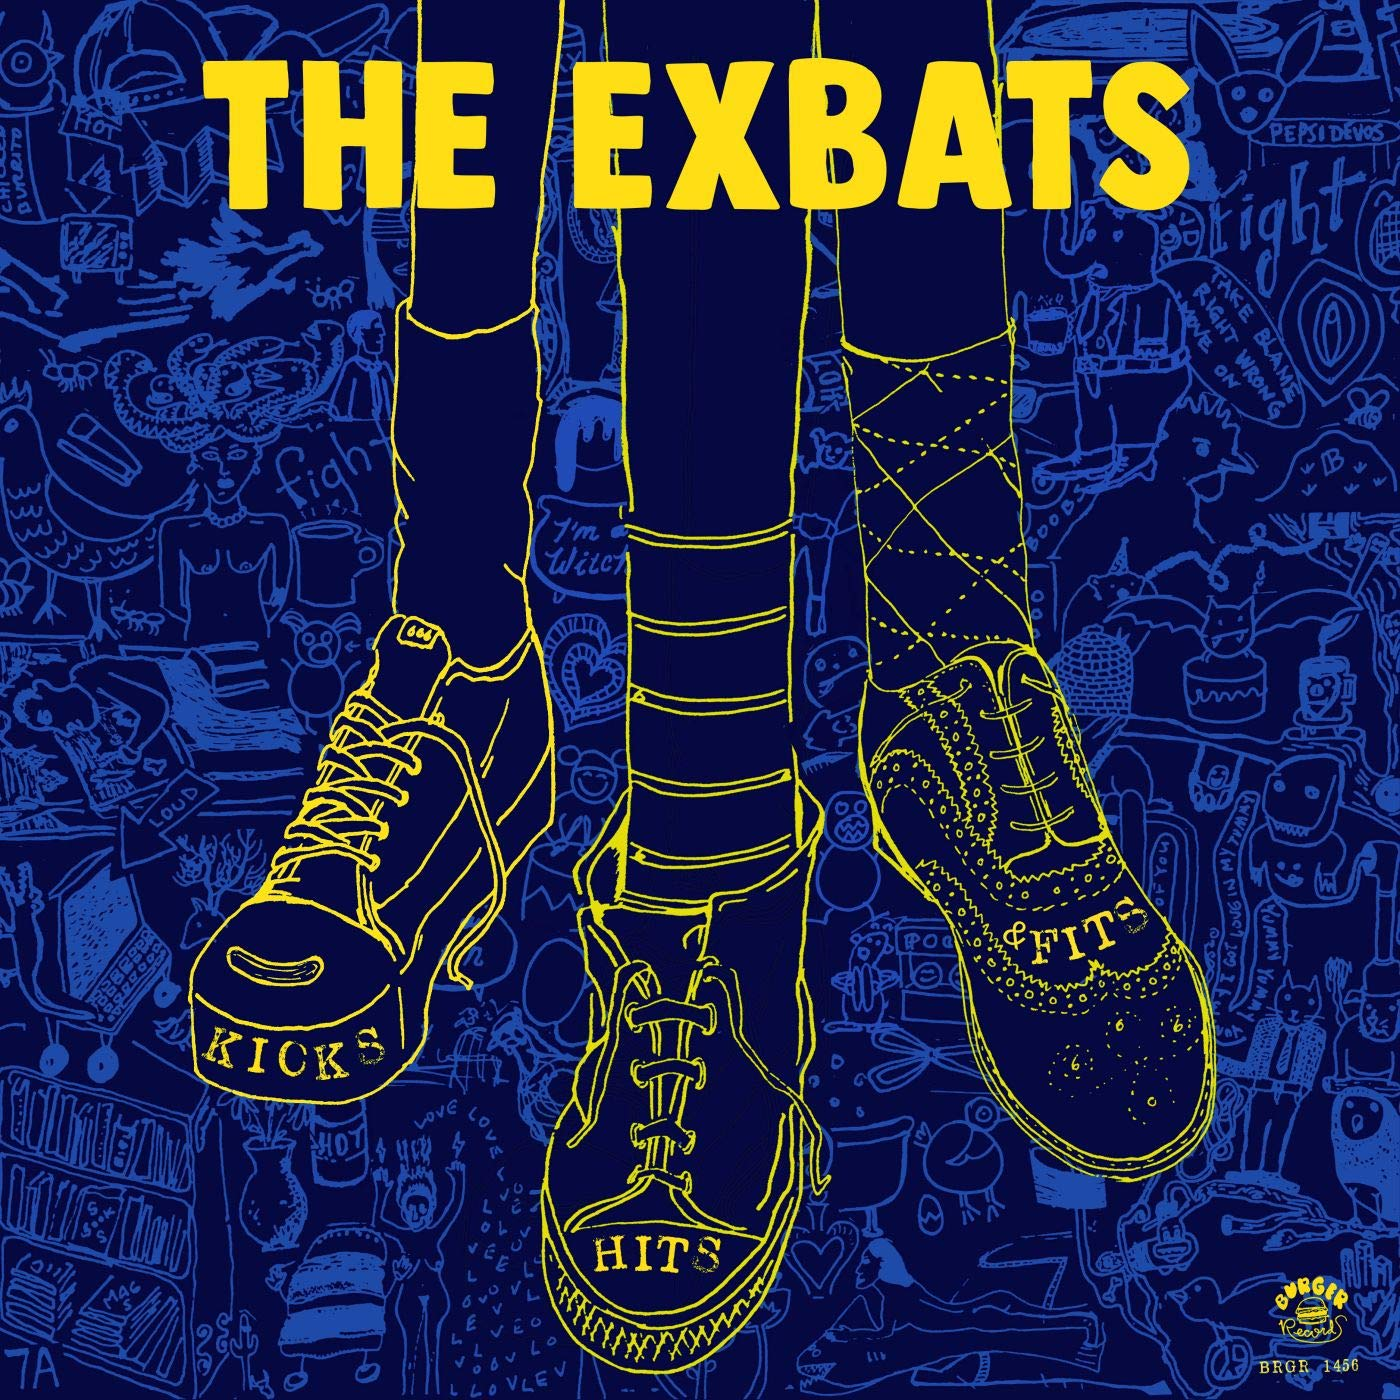 The Exbats - Kicks, Hits And Fits (2020) [FLAC] Download